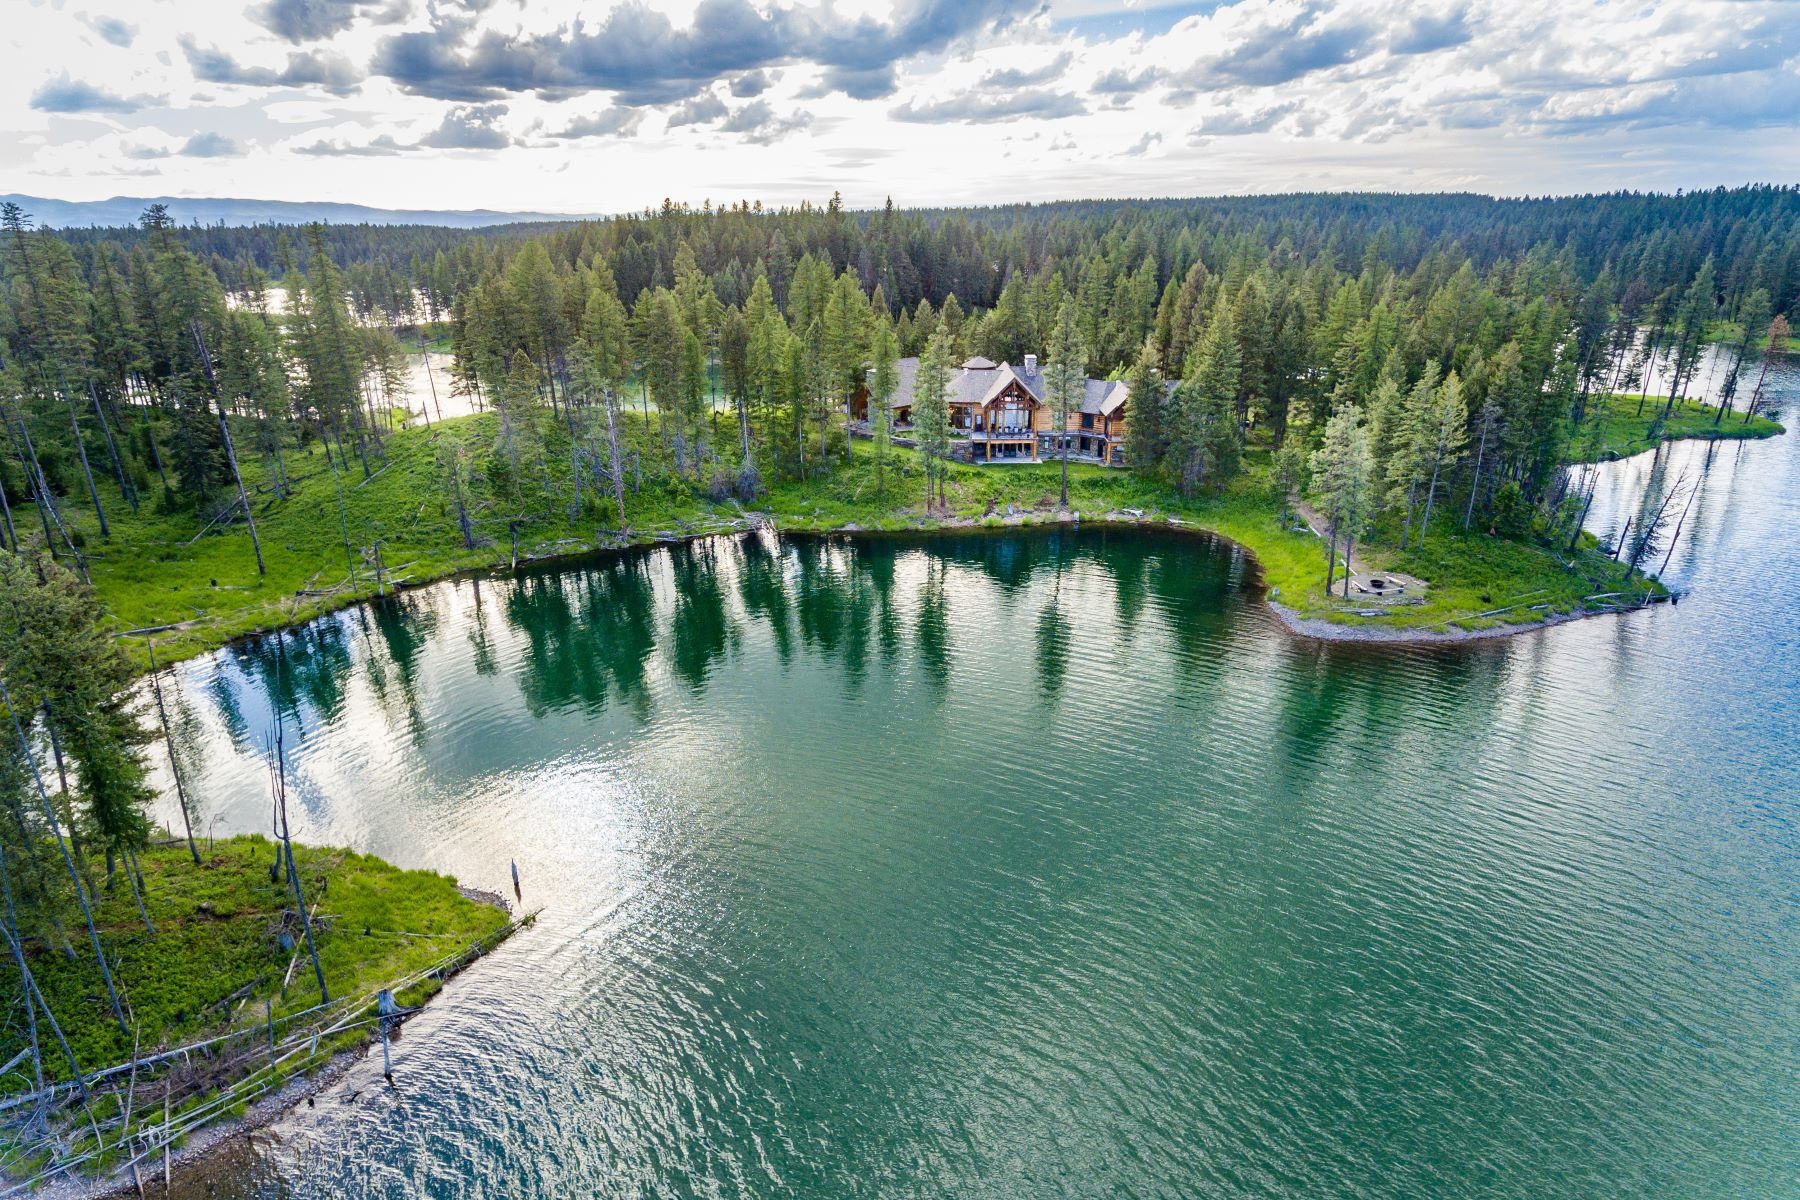 Single Family Homes for Active at 330 Echoing Jewel Road Bigfork, Montana 59911 United States